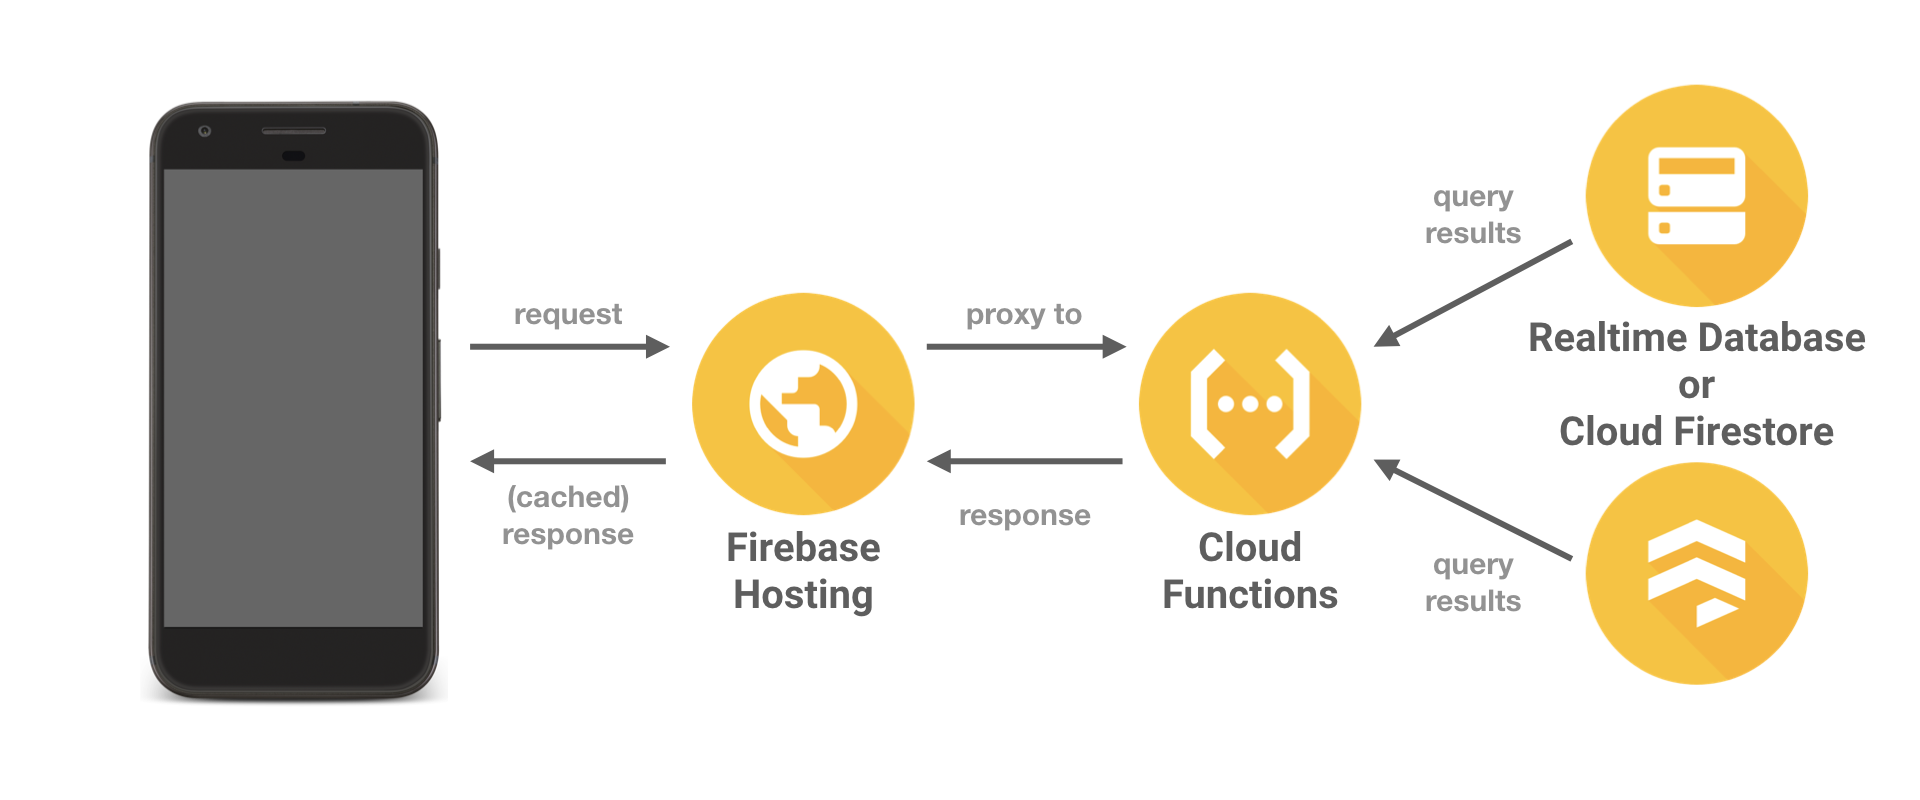 Should I query my Firebase database directly, or use Cloud Functions?